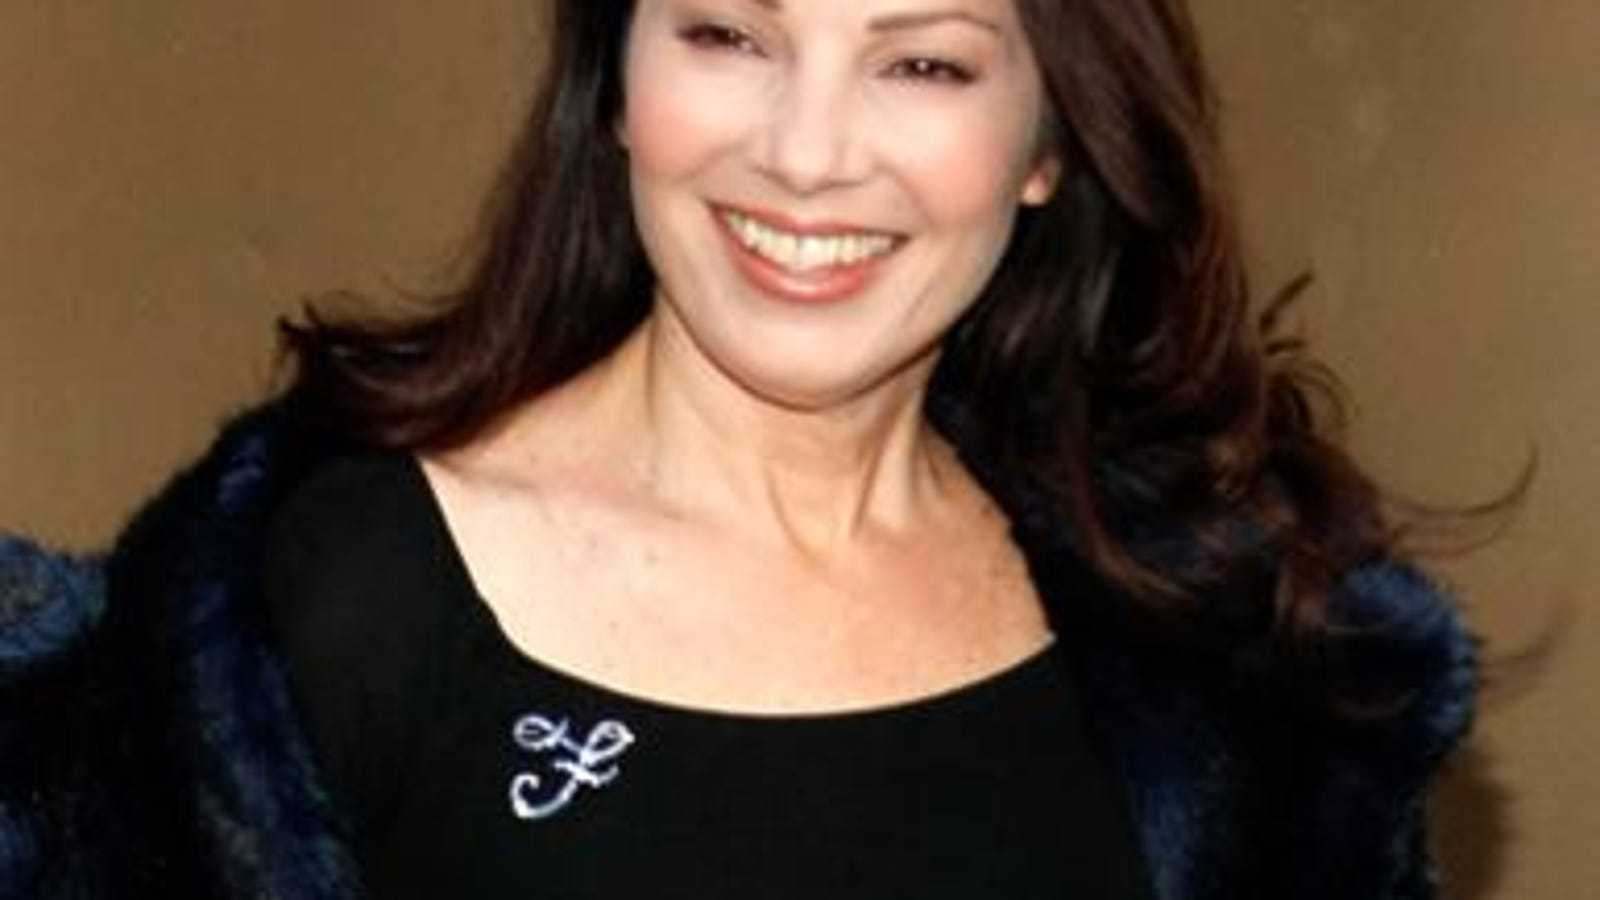 Hacked Fran Drescher naked (57 foto and video), Pussy, Sideboobs, Boobs, bra 2015